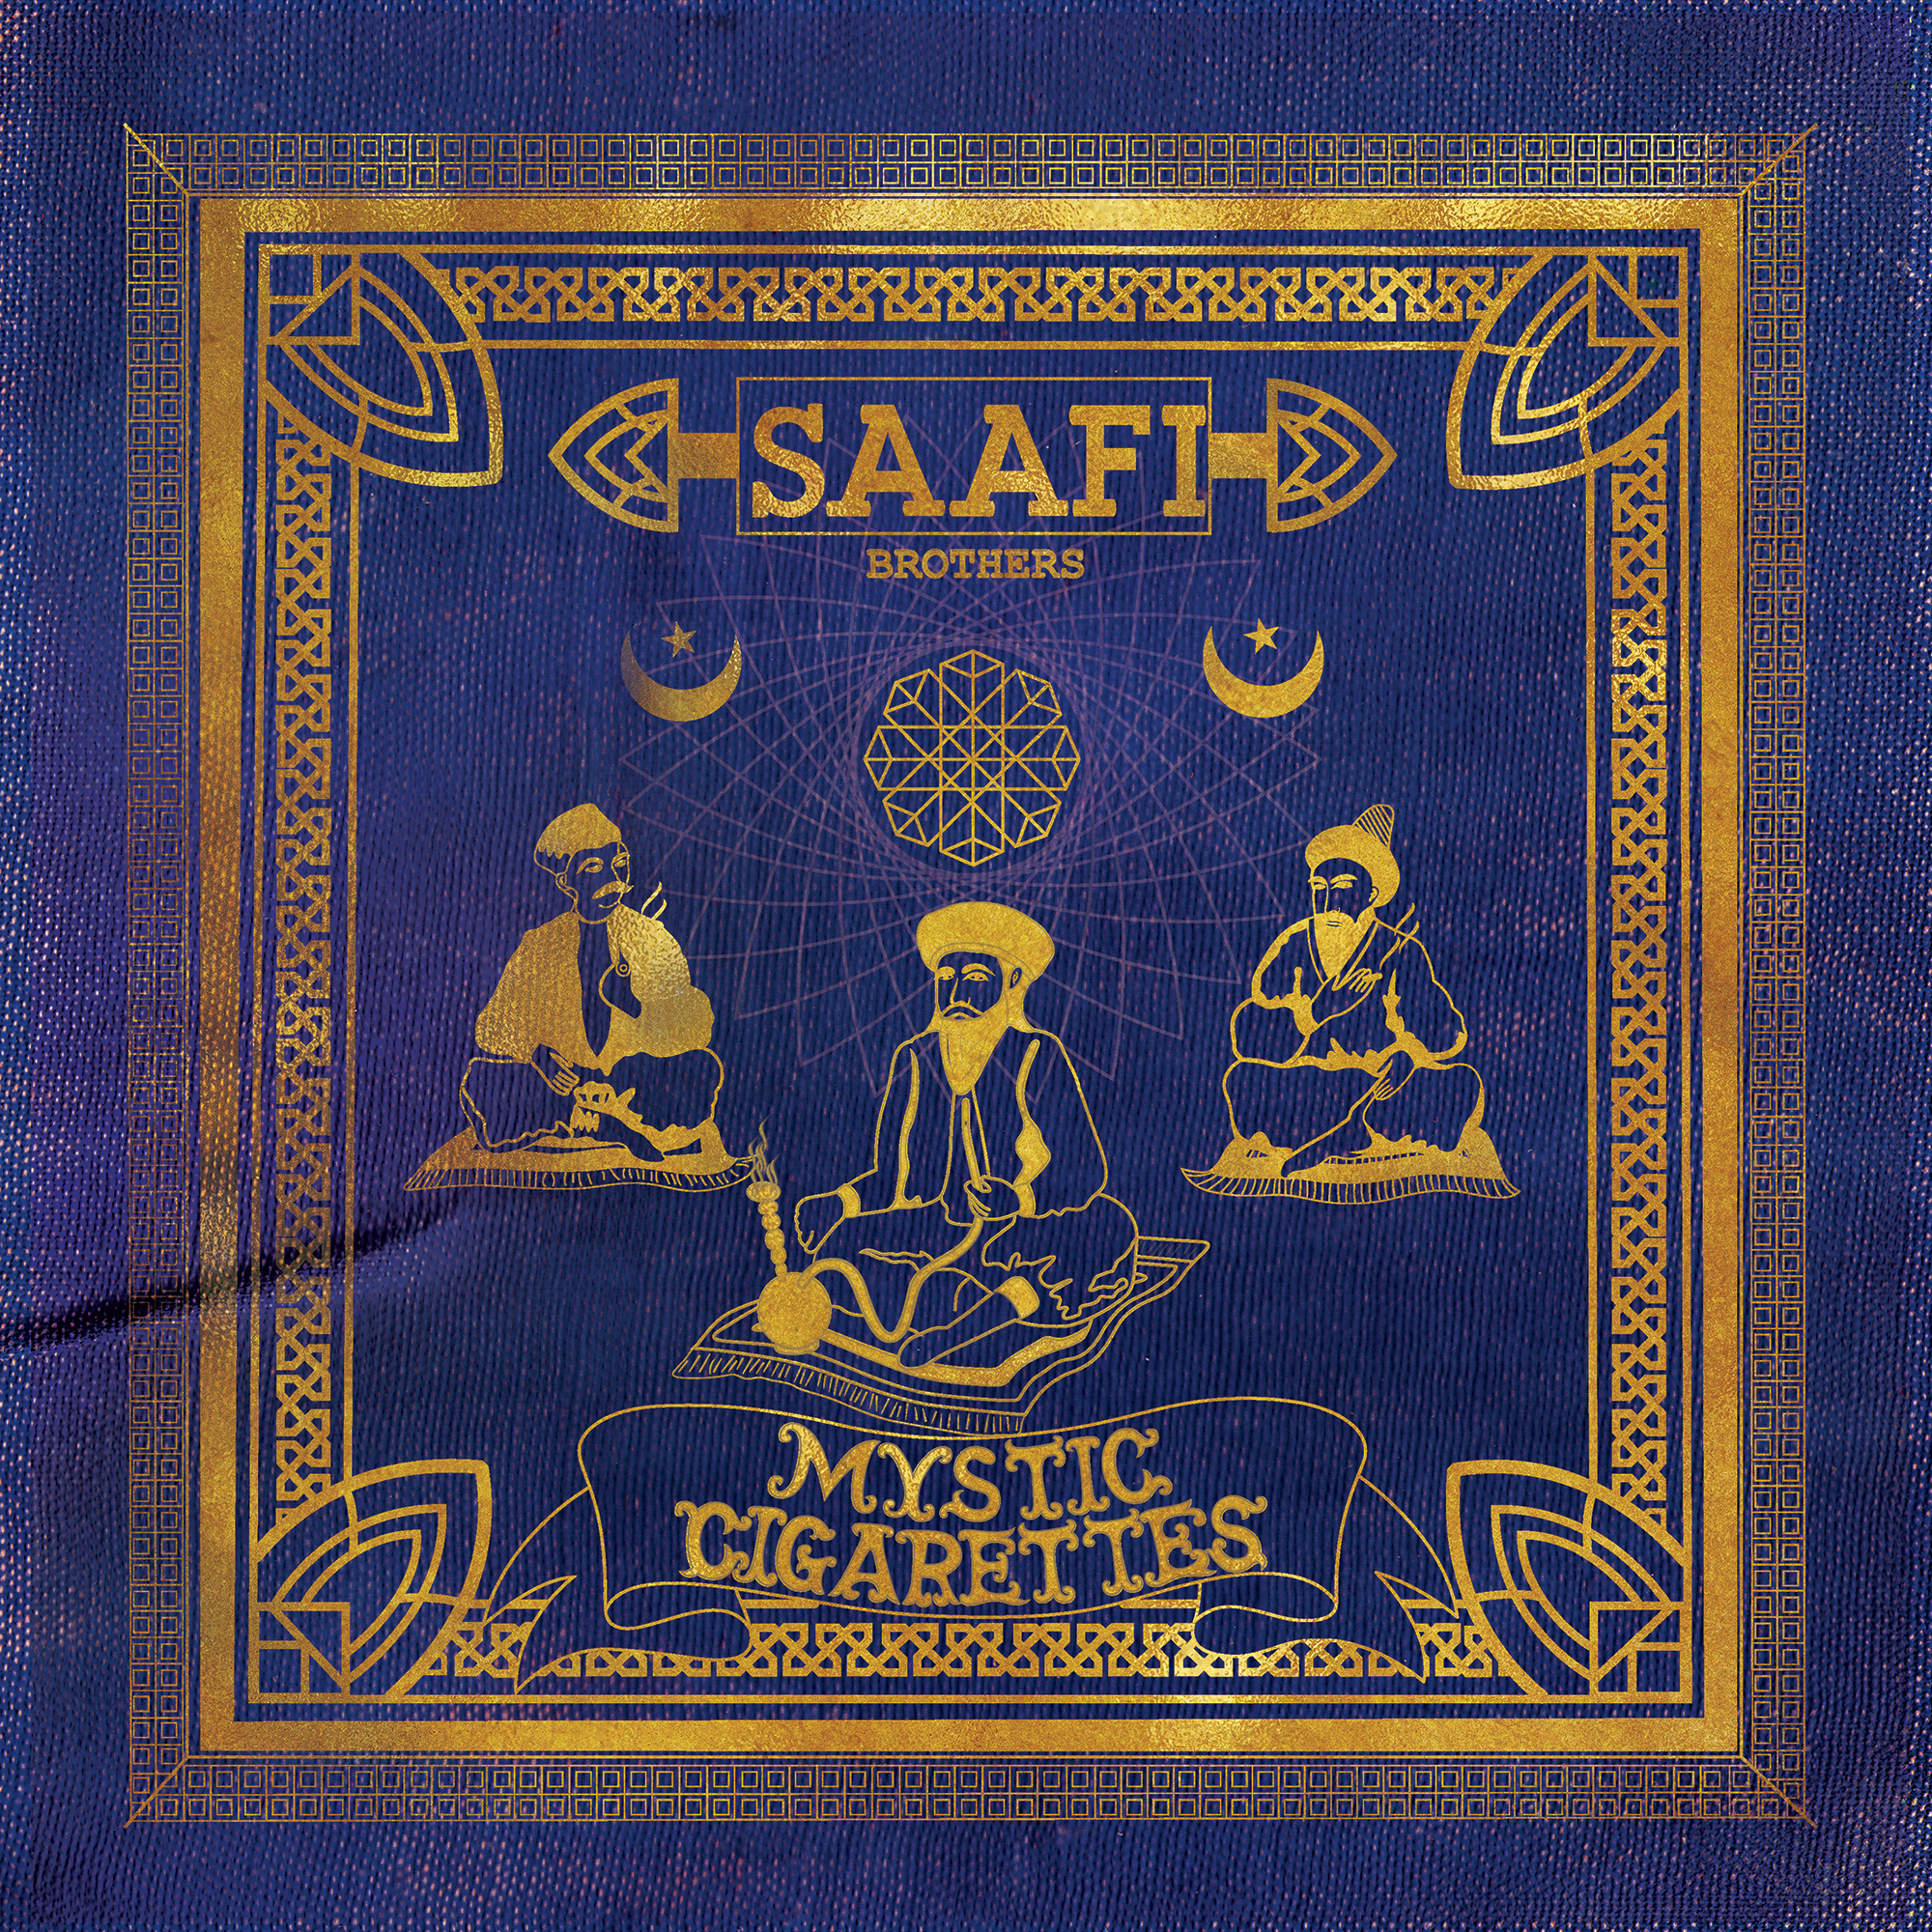 Saafi Brothers - Mystic Cigarettes (New Flavours of Old Classics) - LiQUID SOUND DESIGN 2019